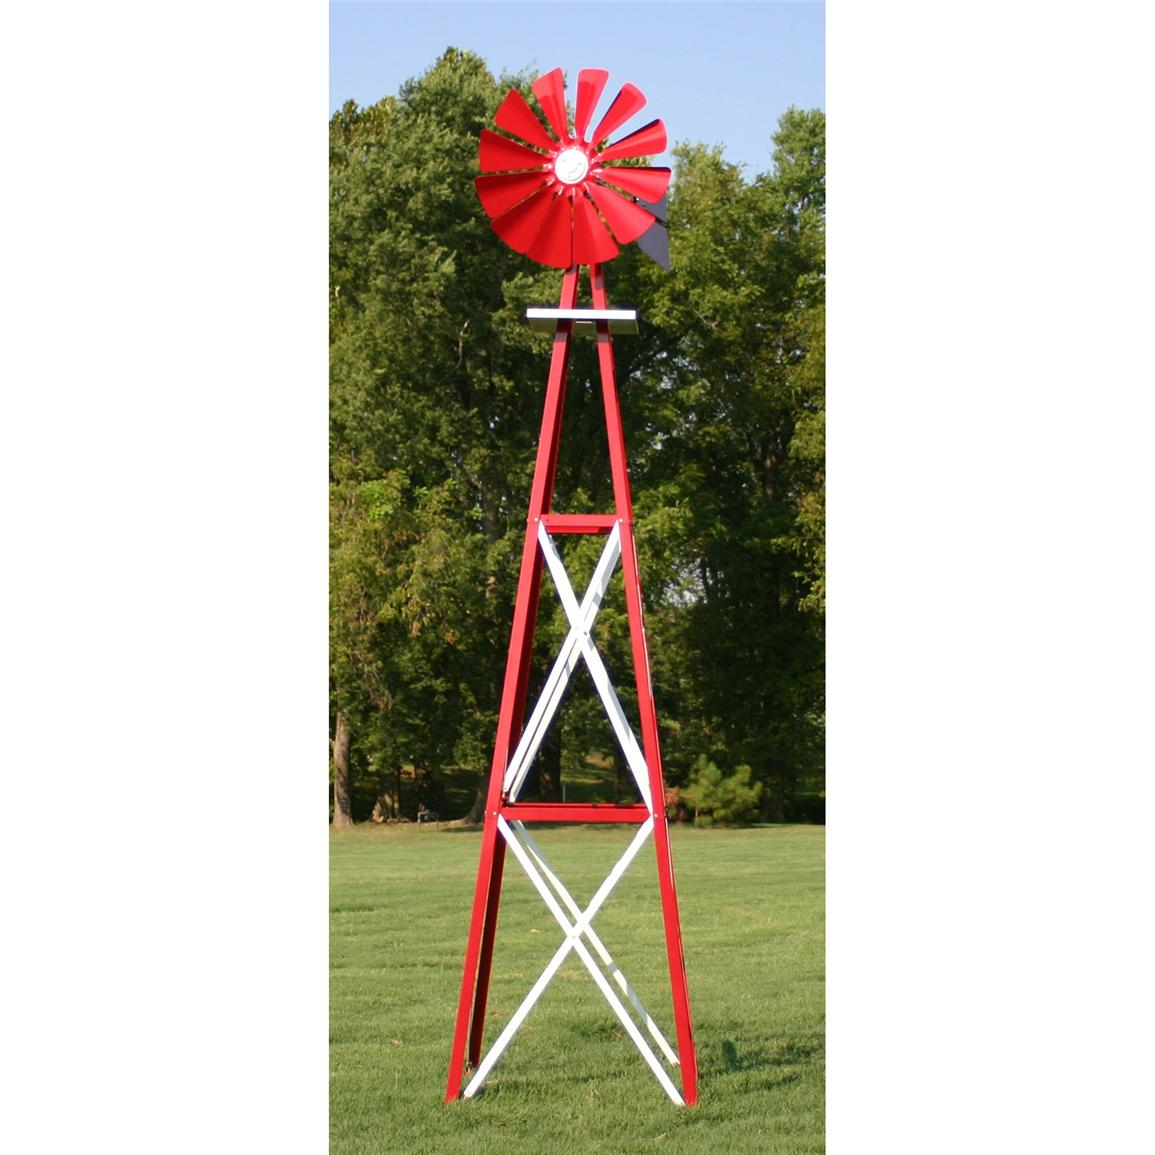 Outdoor Water Solutions® Ornamental Large Powder-coated Backyard Windmill, Red / White